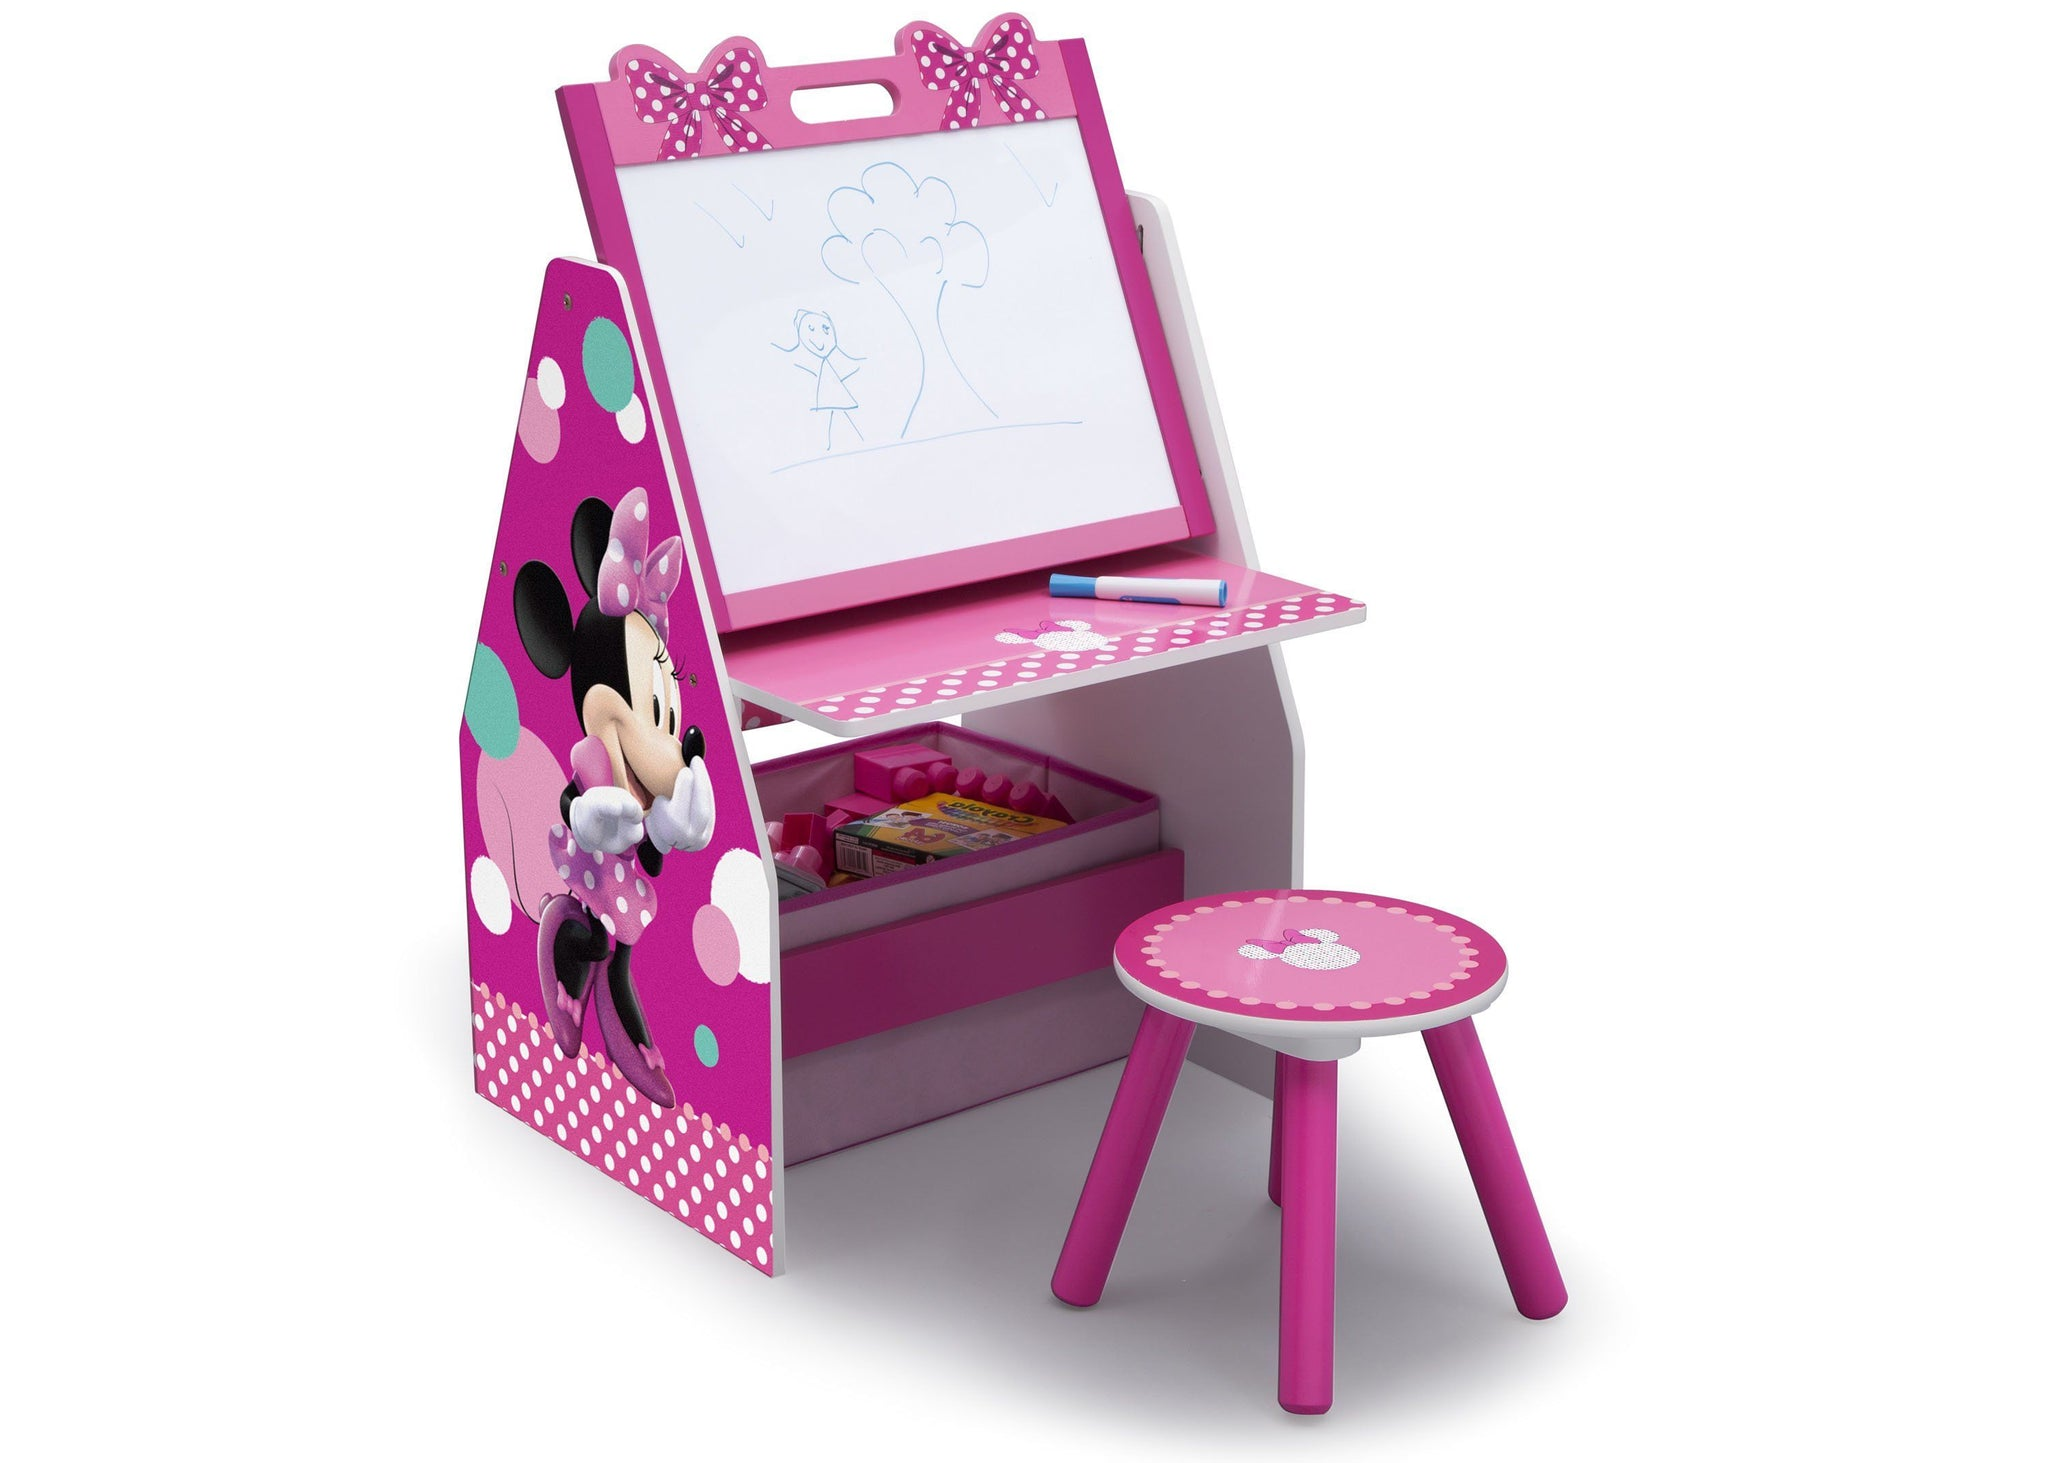 Delta Children Minnie Mouse Activity Center - Easel Desk with Stool & Toy Organizer Right View Easel Desk a1a